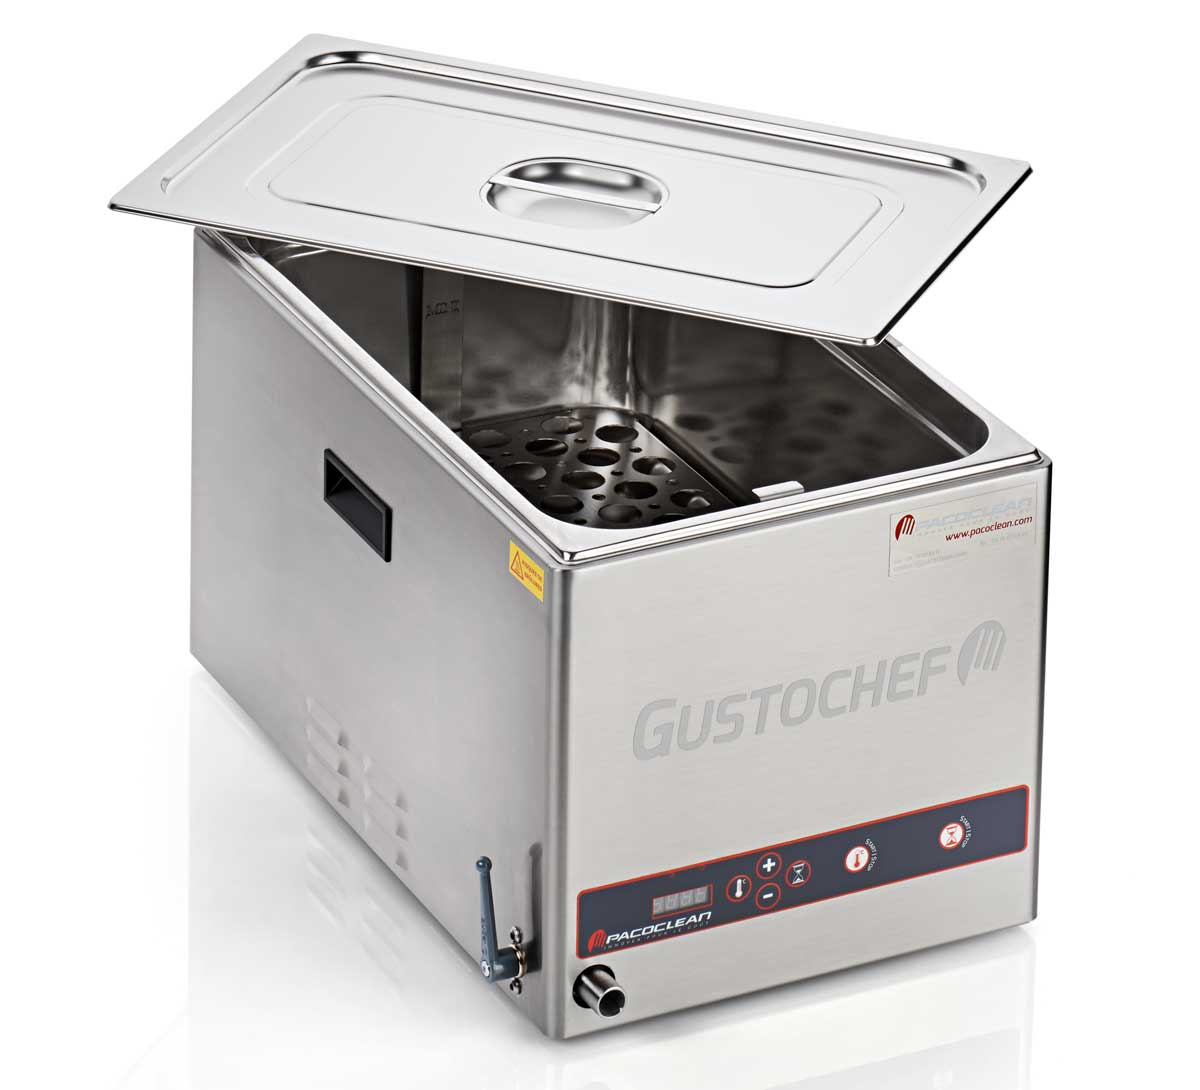 Gustochef-27L-pacolean